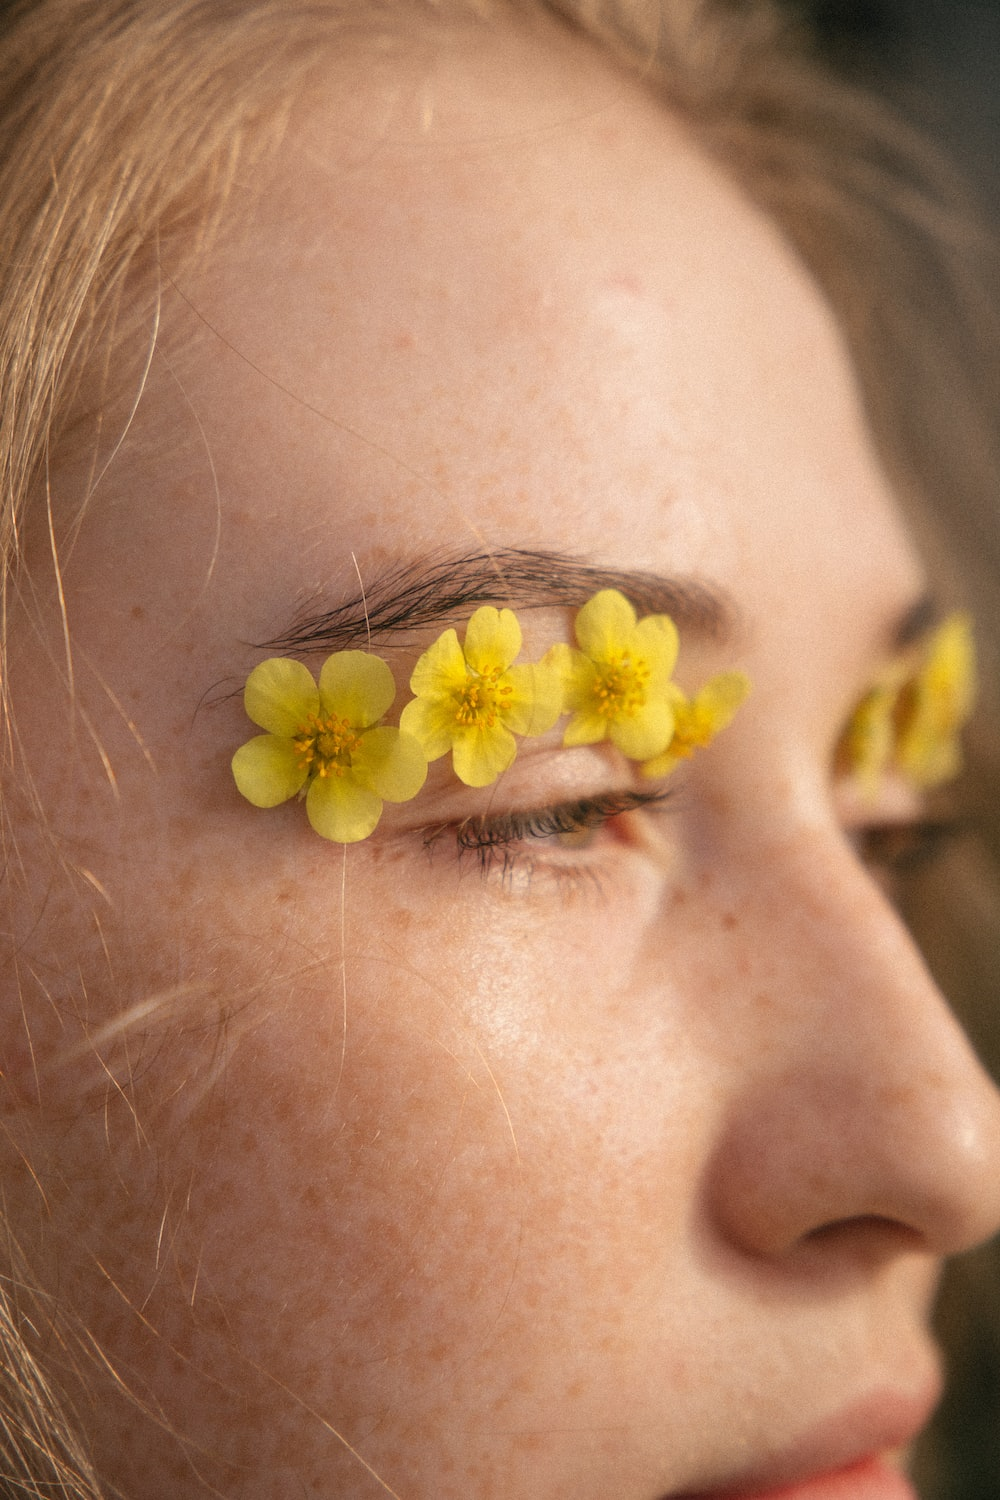 yellow flower on persons ear